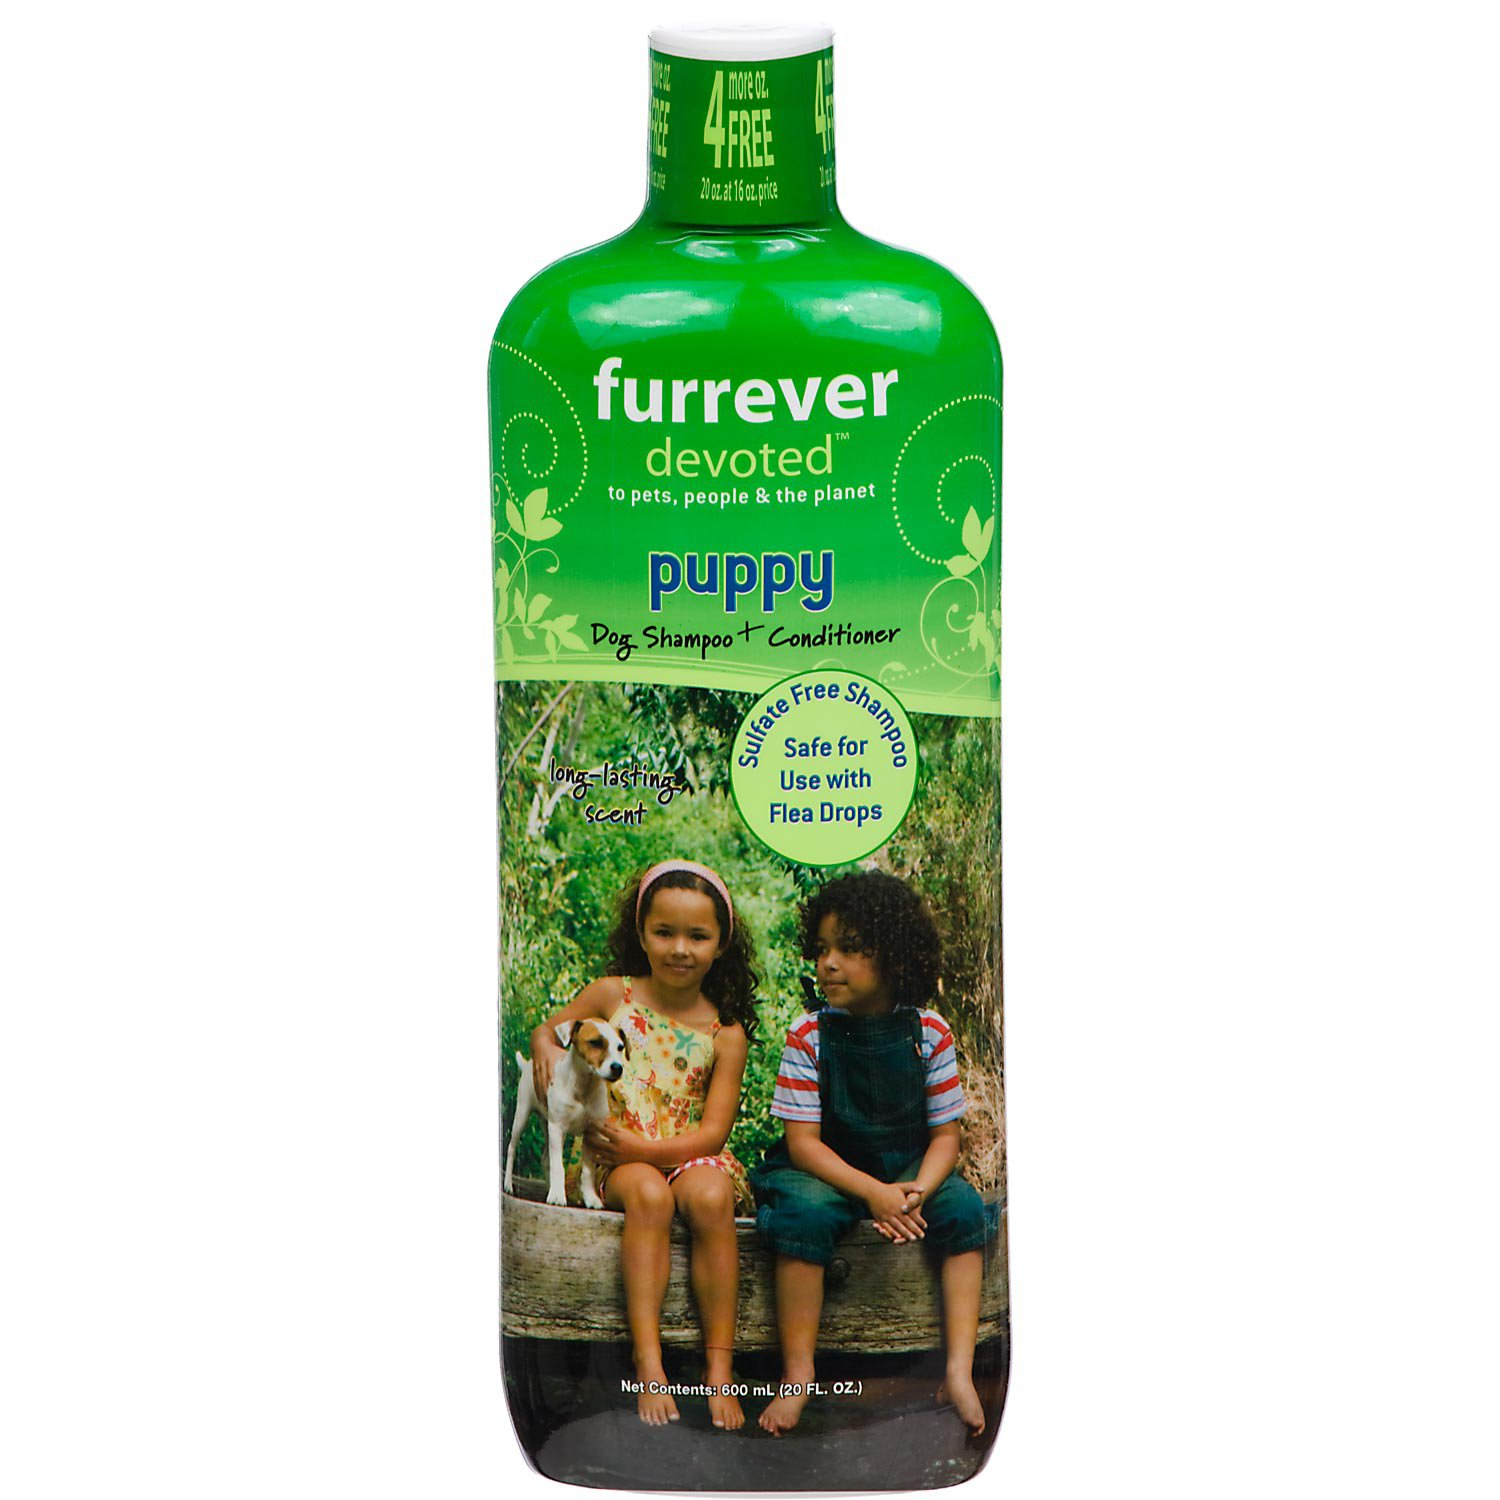 Furrever Devoted Puppy Dog Shampoo and Conditioner